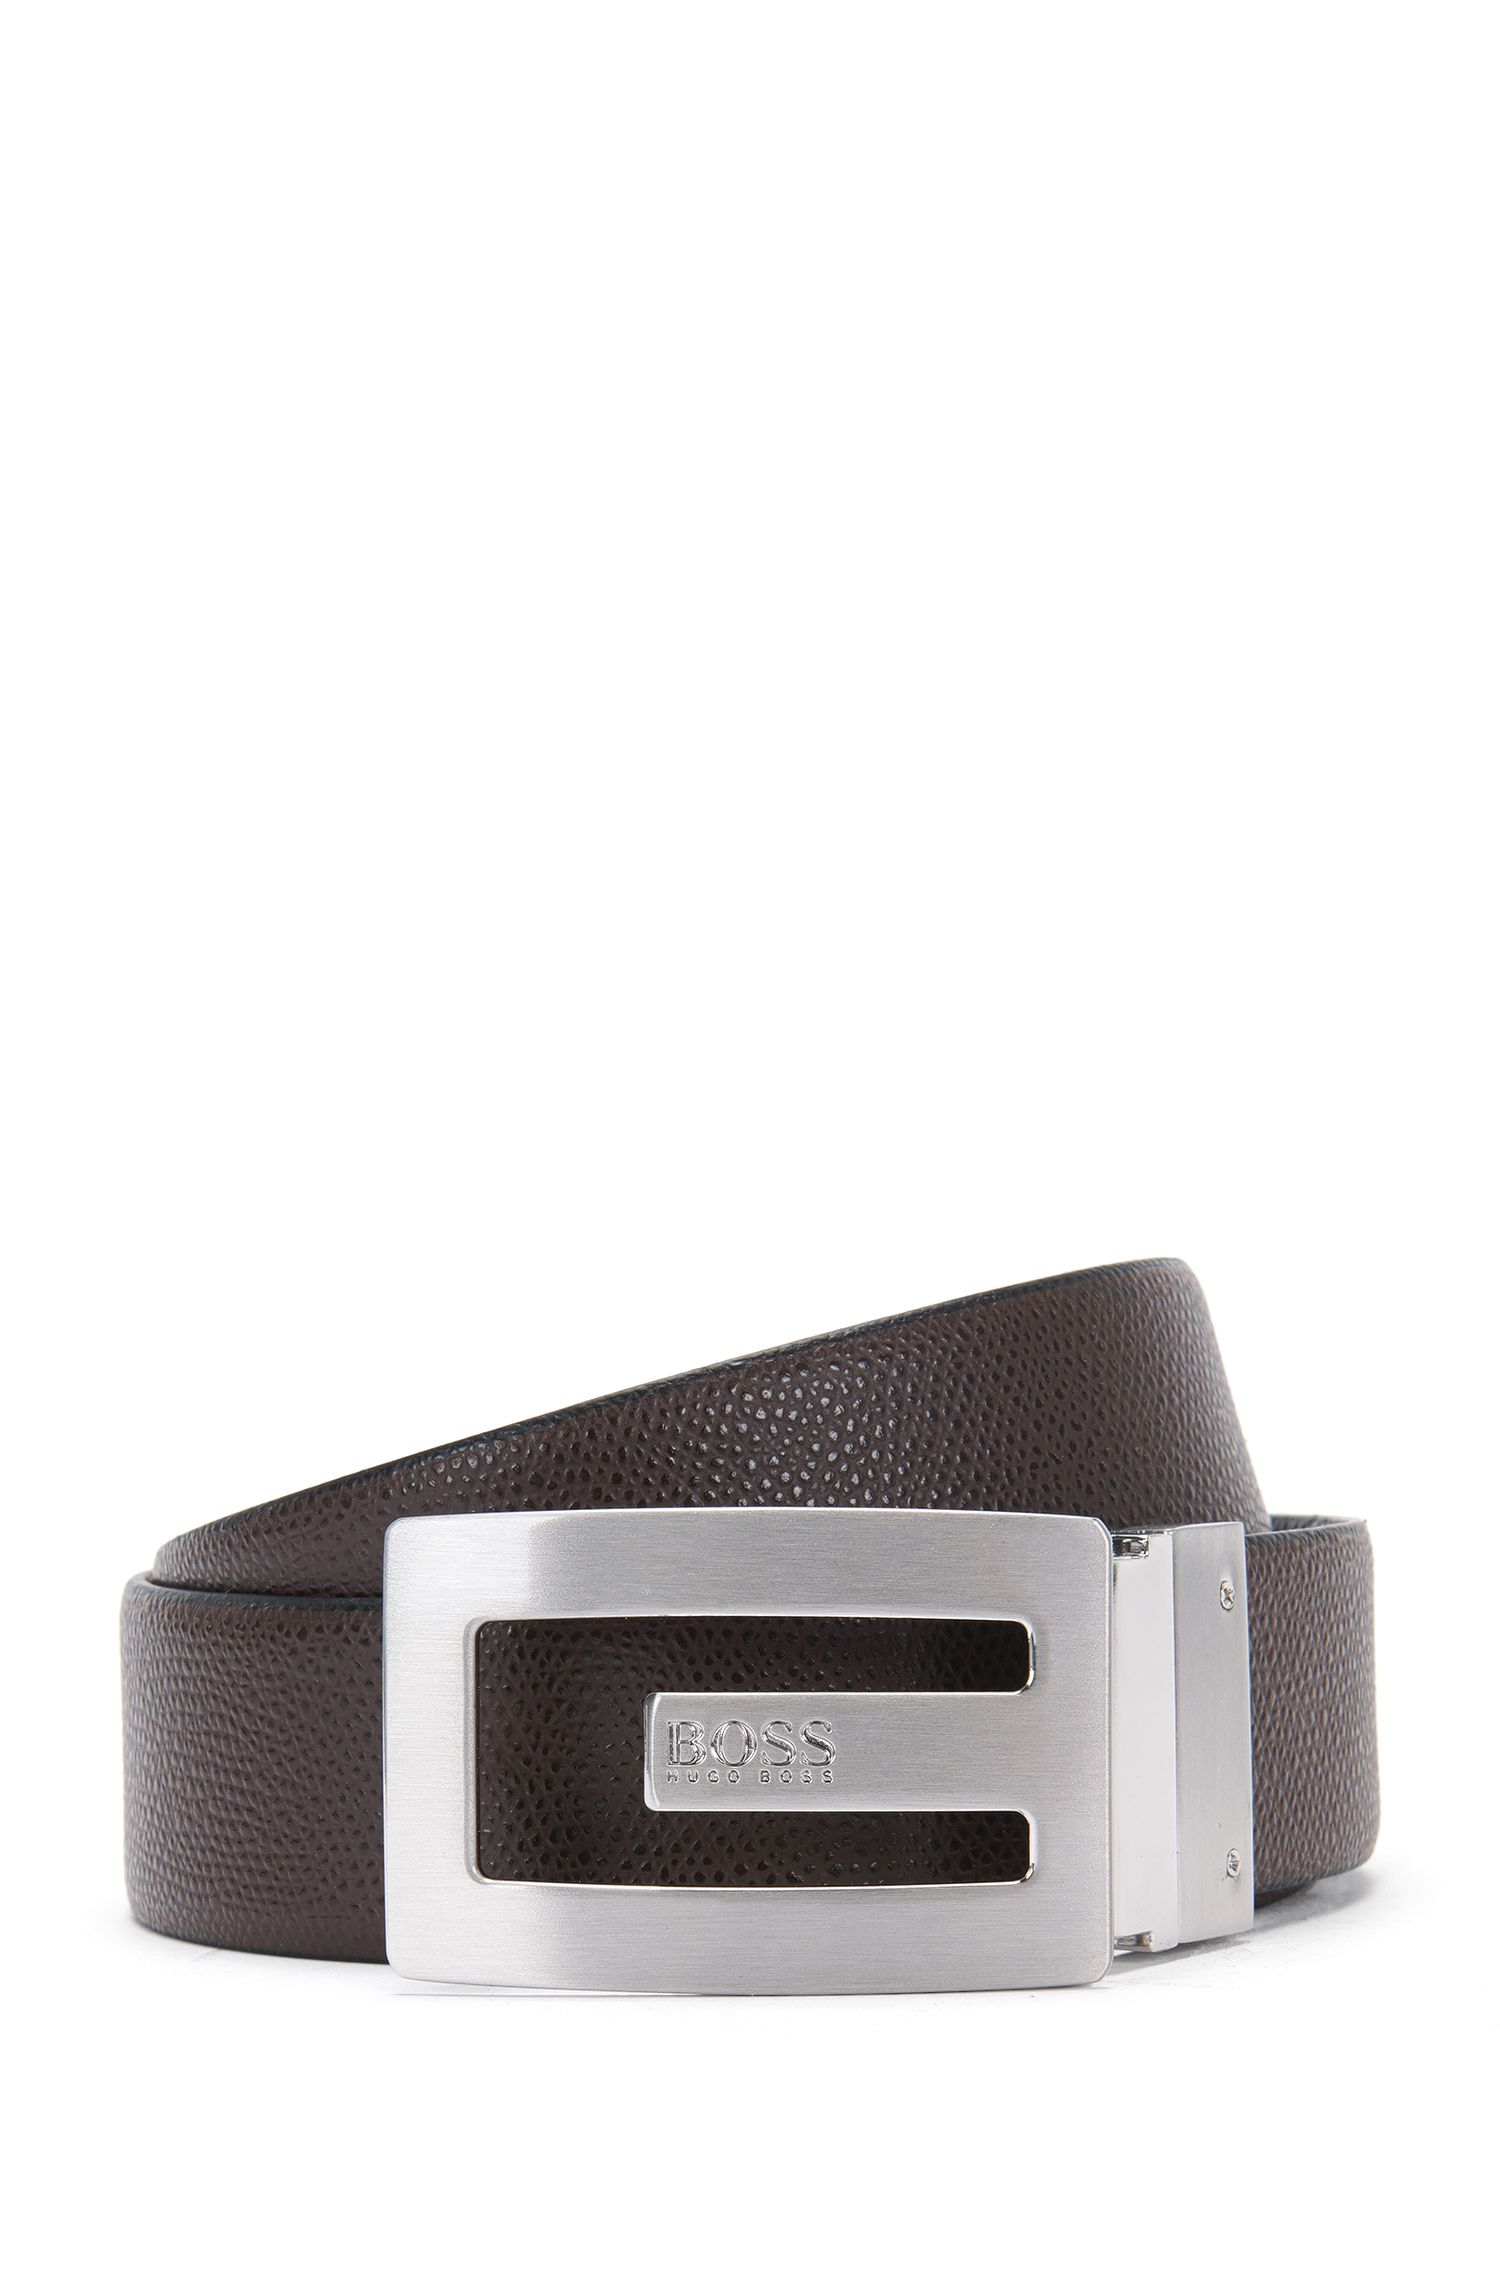 'Ranny Sr35 Itgr' | Reversible Grained Leather Belt